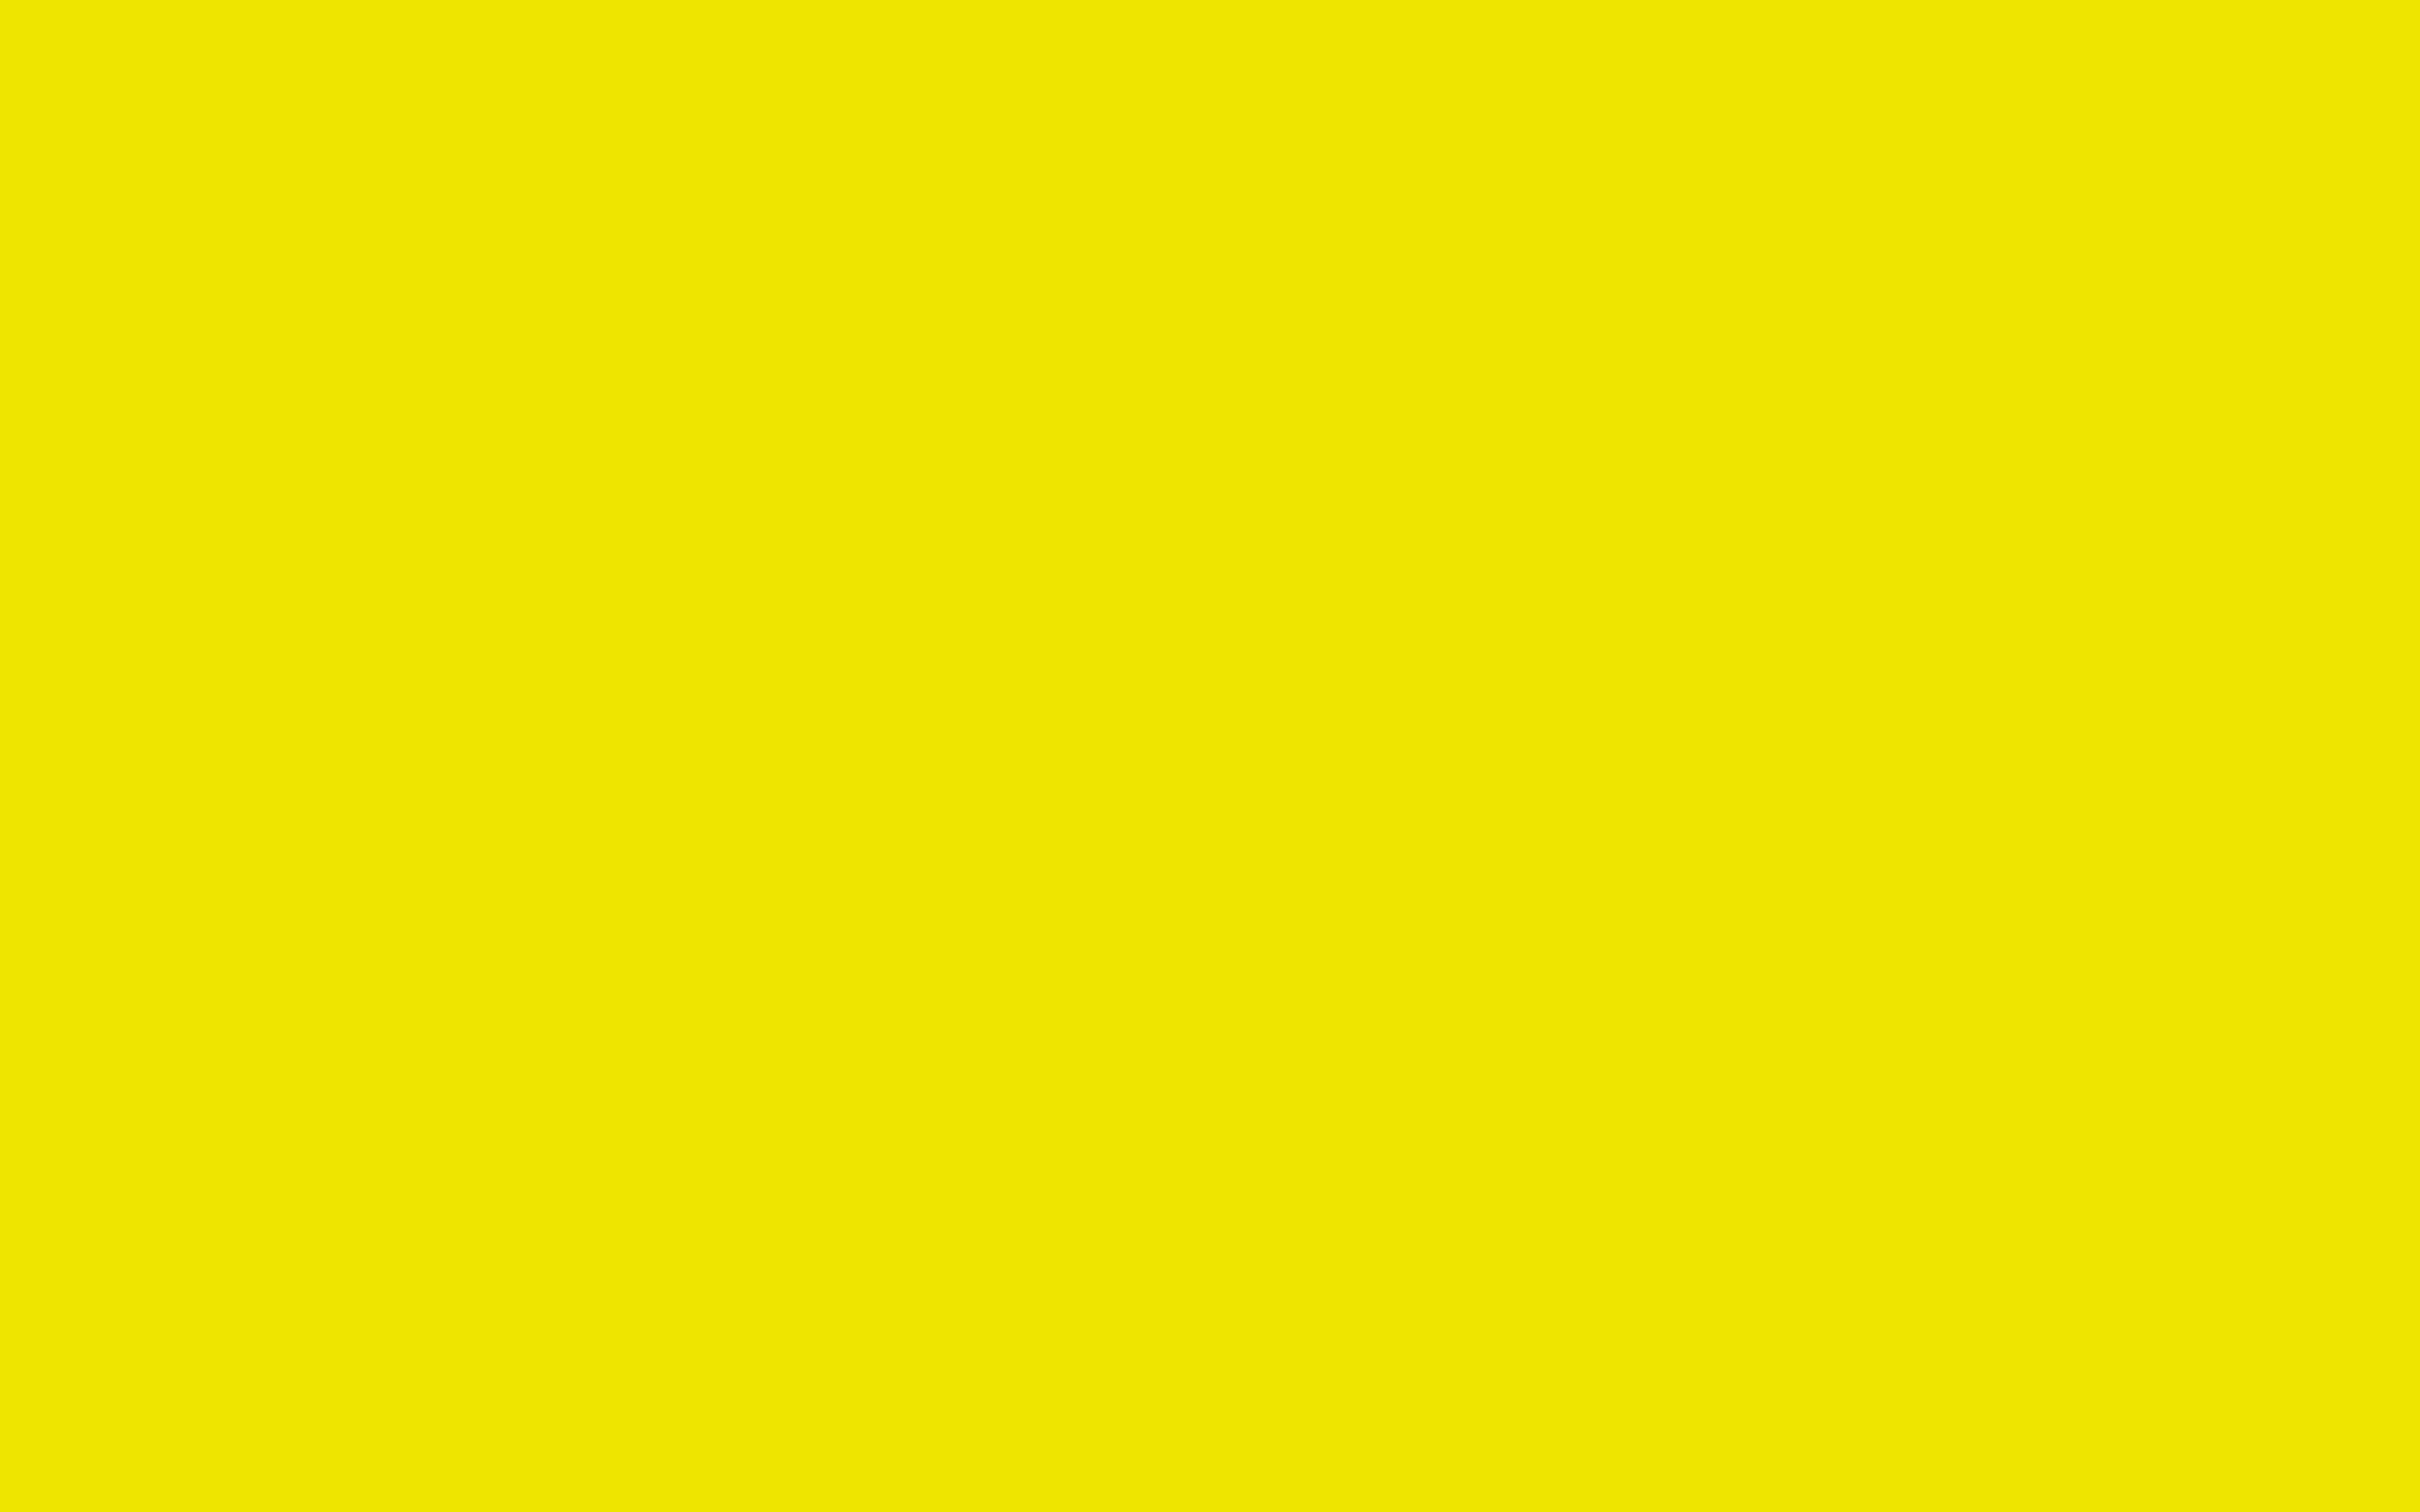 2560x1600 Titanium Yellow Solid Color Background